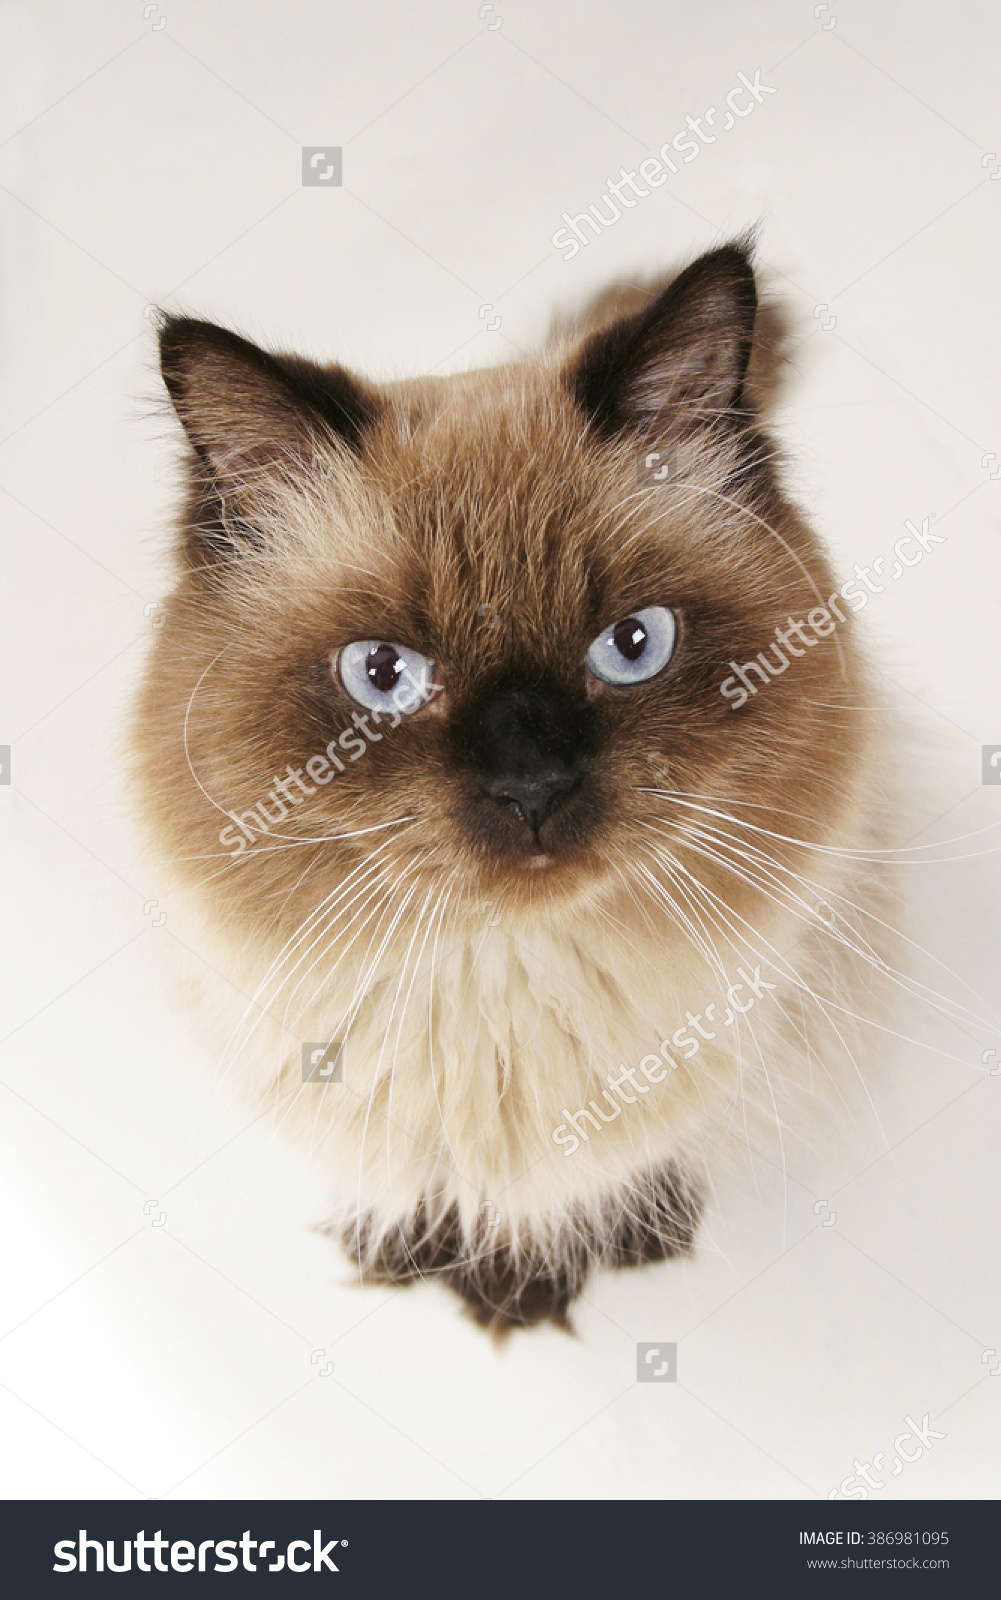 Himalayan Cat Breed Stock Photo 386981095.